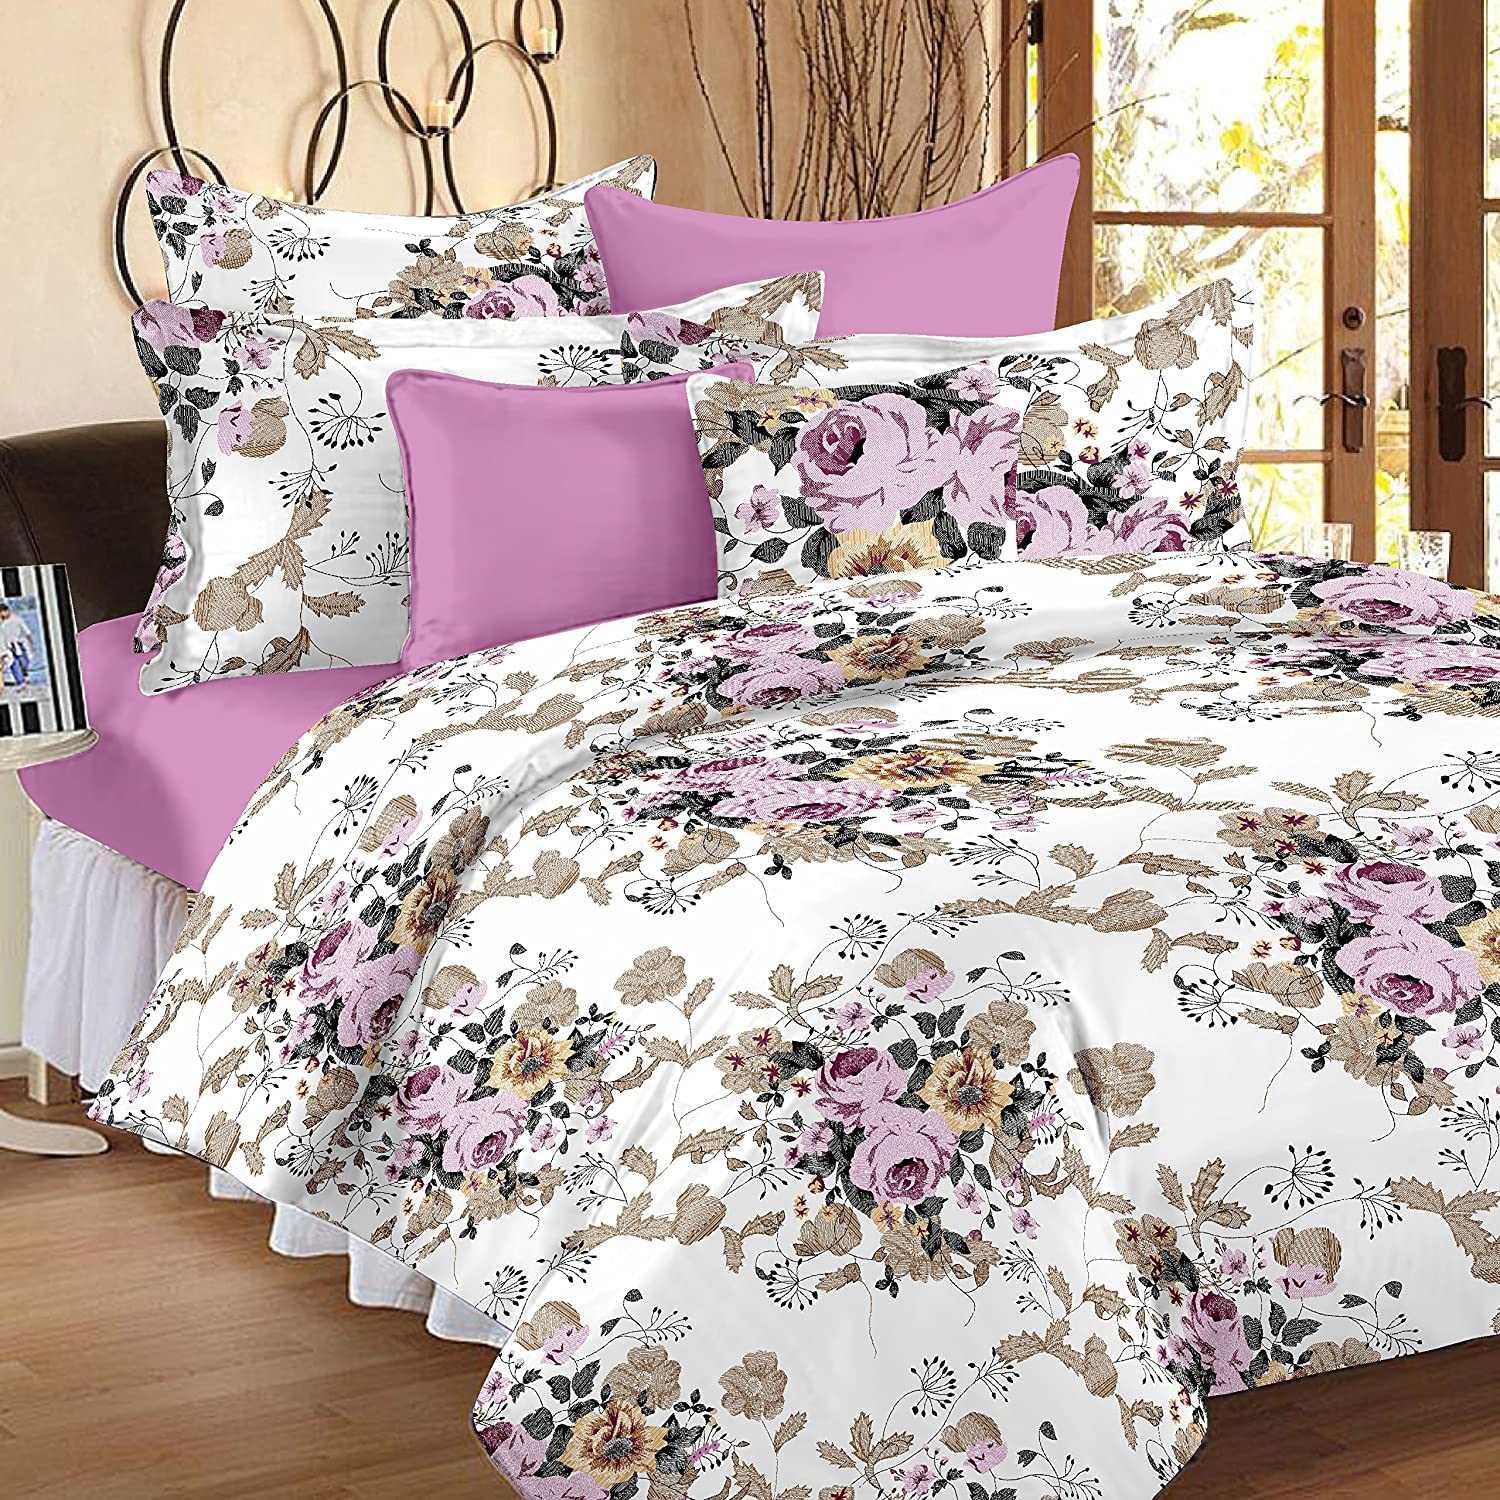 Ahmedabad Cotton Comfort 160 TC Cotton Bedsheet With 2 Pillow Covers   King  Size, Pink: Amazon.in: Home U0026 Kitchen